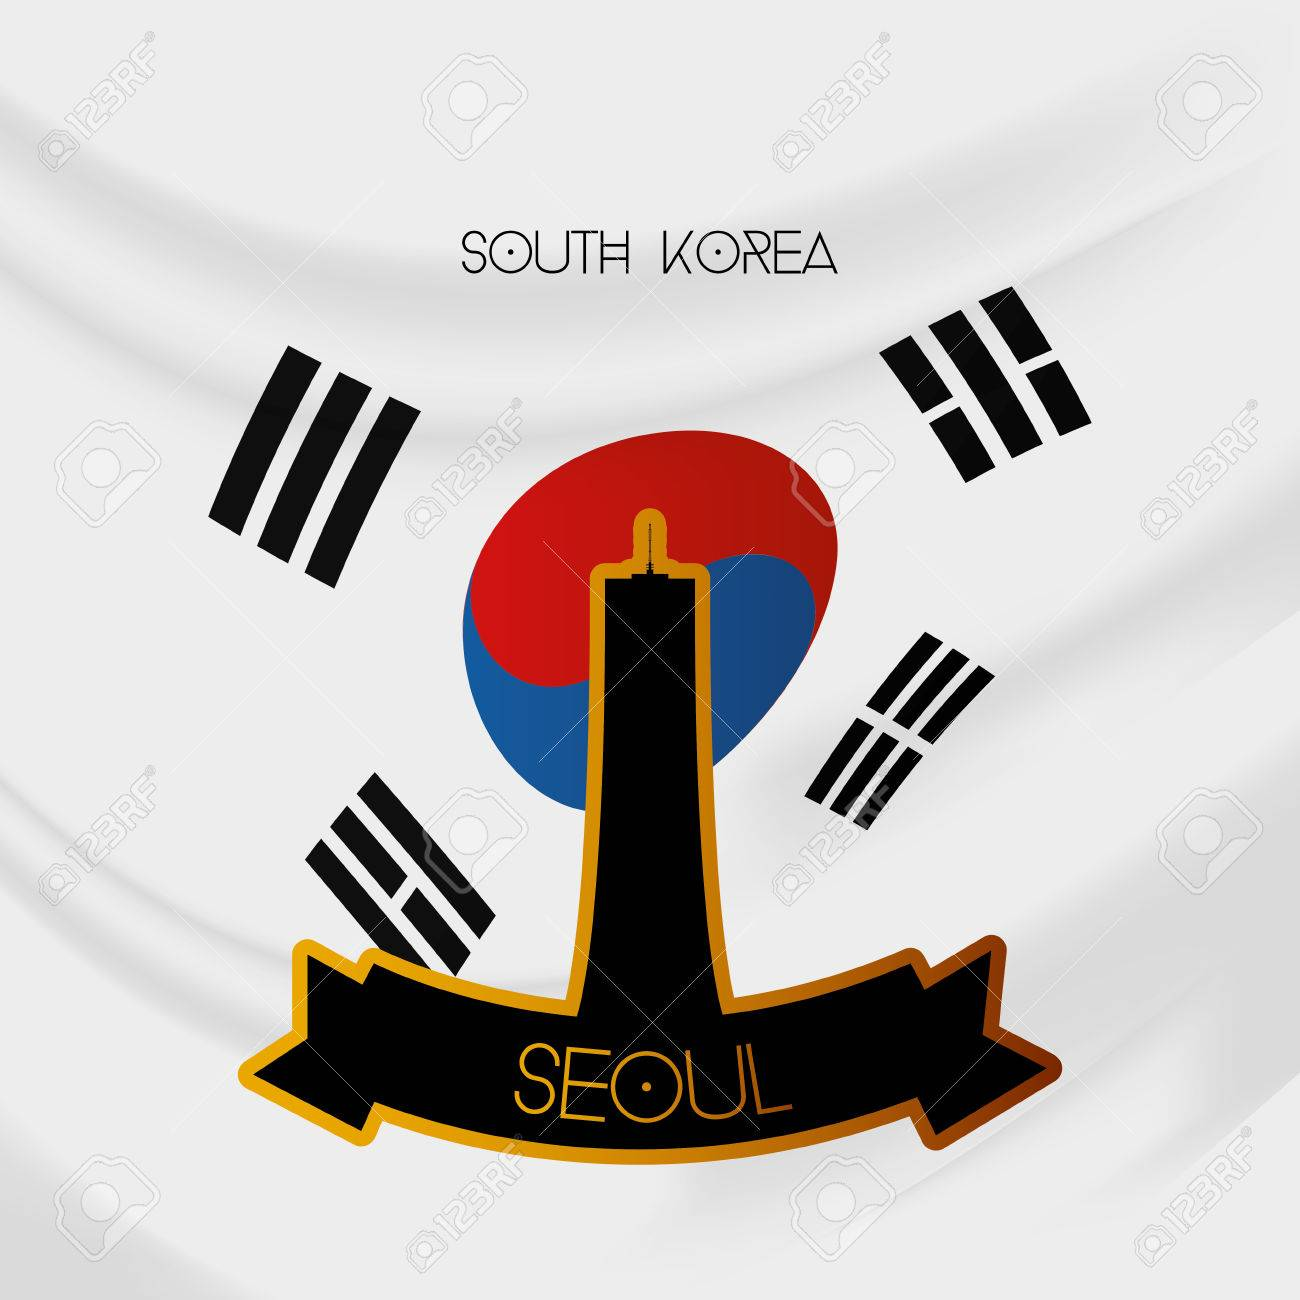 Coloring printable south korea flag - A Colored Background With The South Korean Flag And The 63 Building Stock Vector 35745309